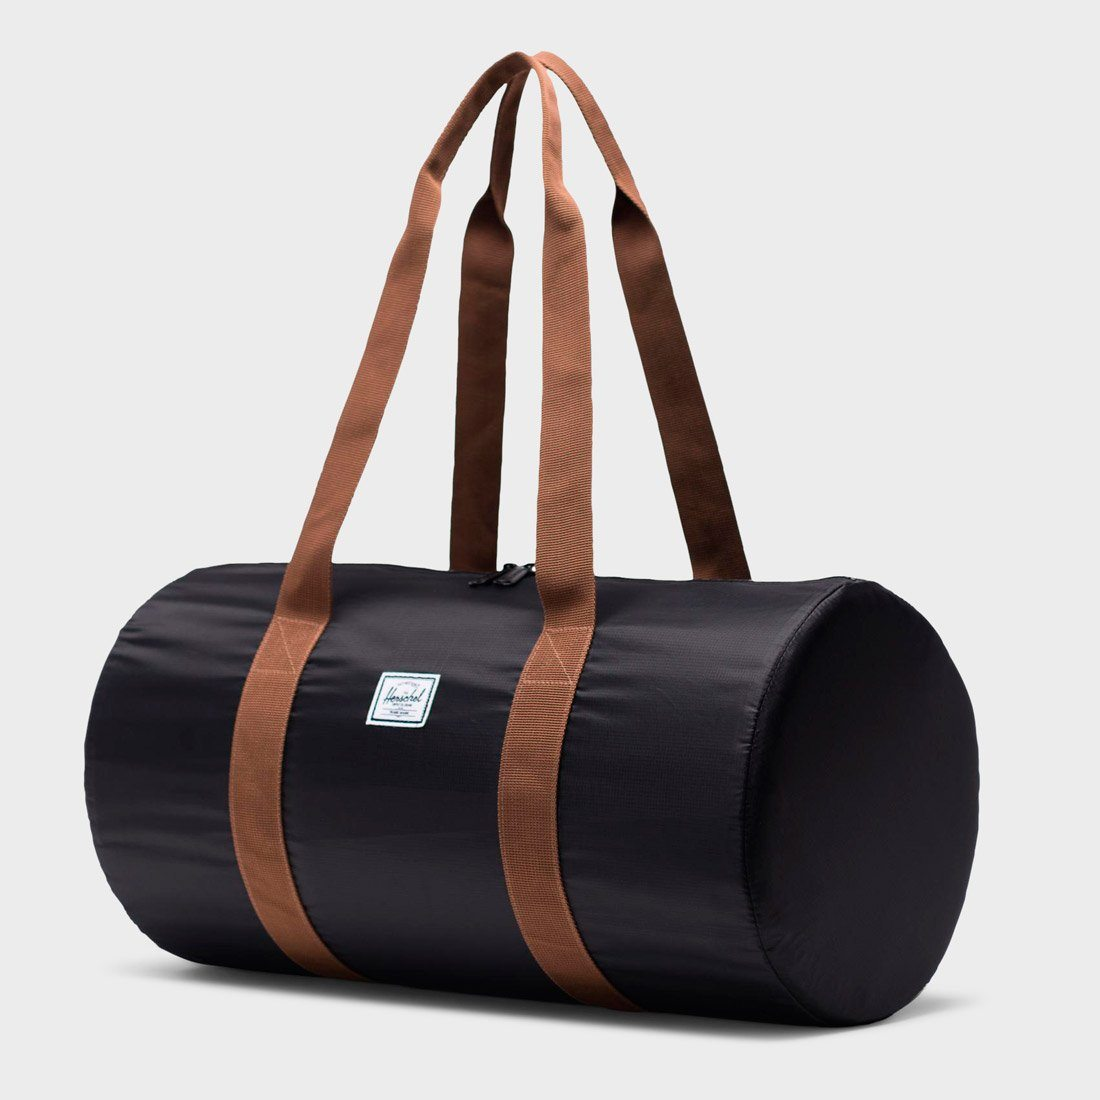 Herschel Packable Duffle 22L Black/ Saddle Brown